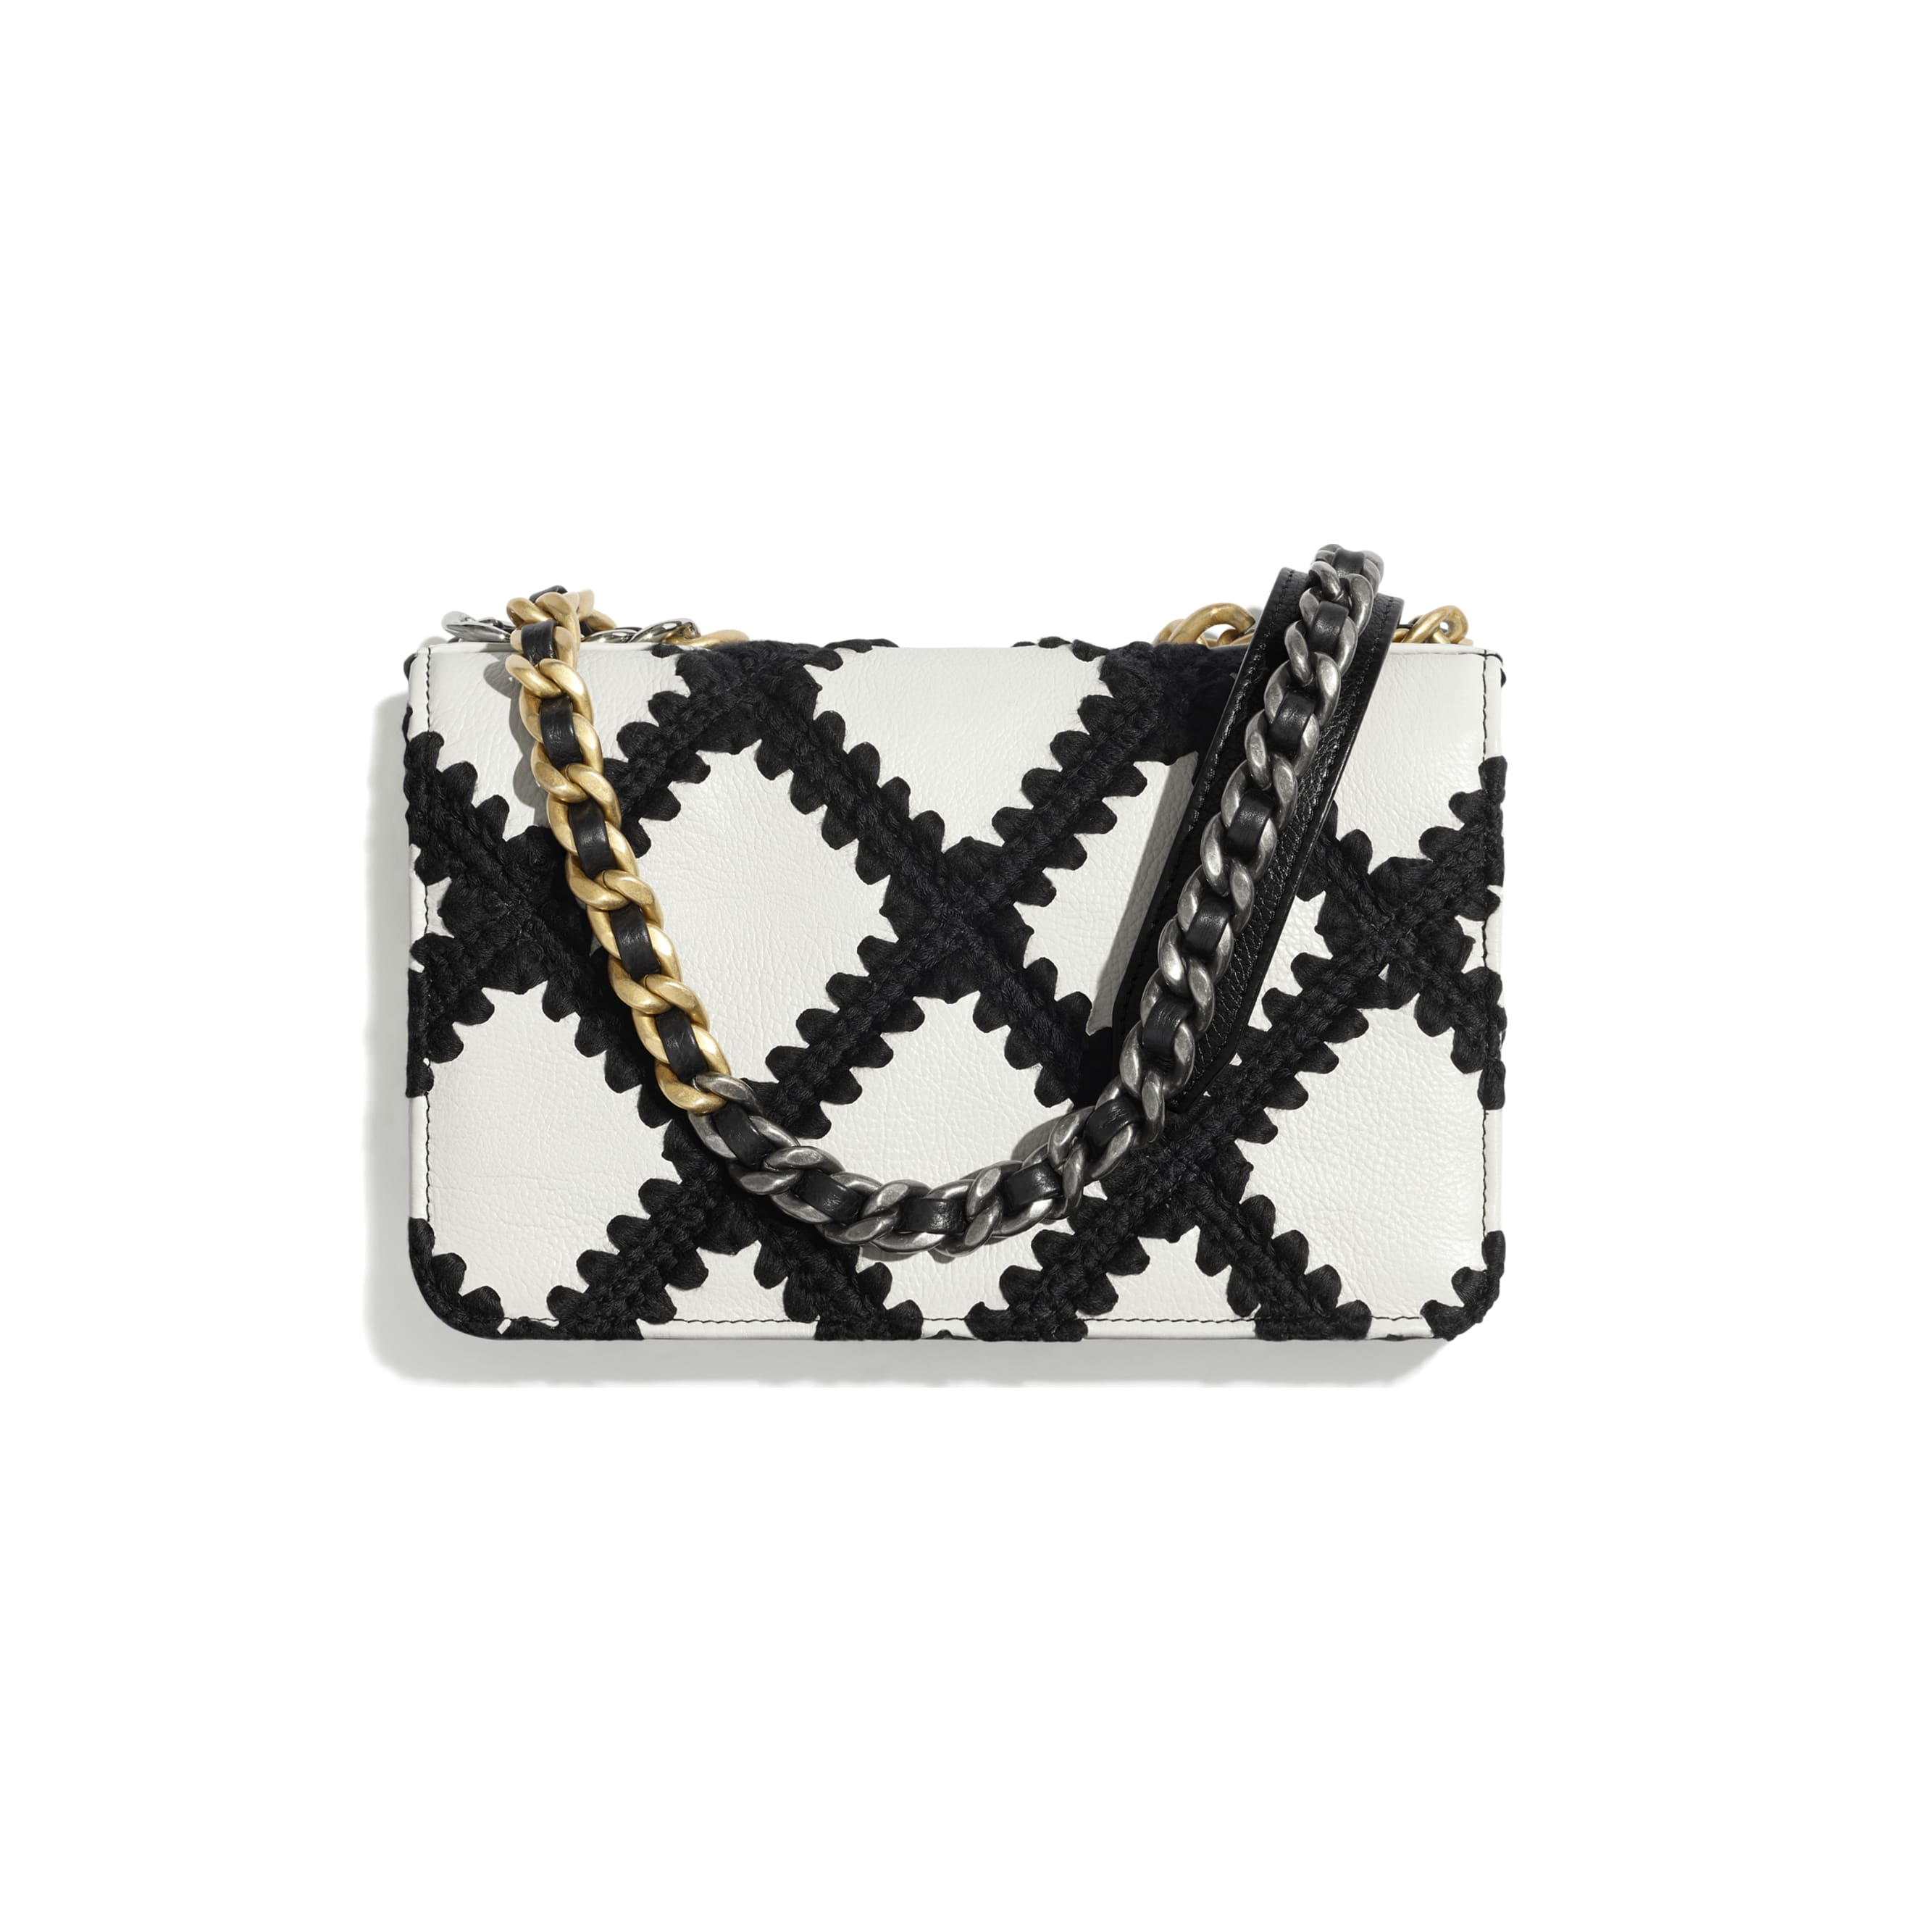 CHANEL 19 Wallet on Chain - White & Black - Calfskin, Crochet, Gold-Tone, Silver-Tone & Ruthenium-Finish Metal - CHANEL - Alternative view - see standard sized version